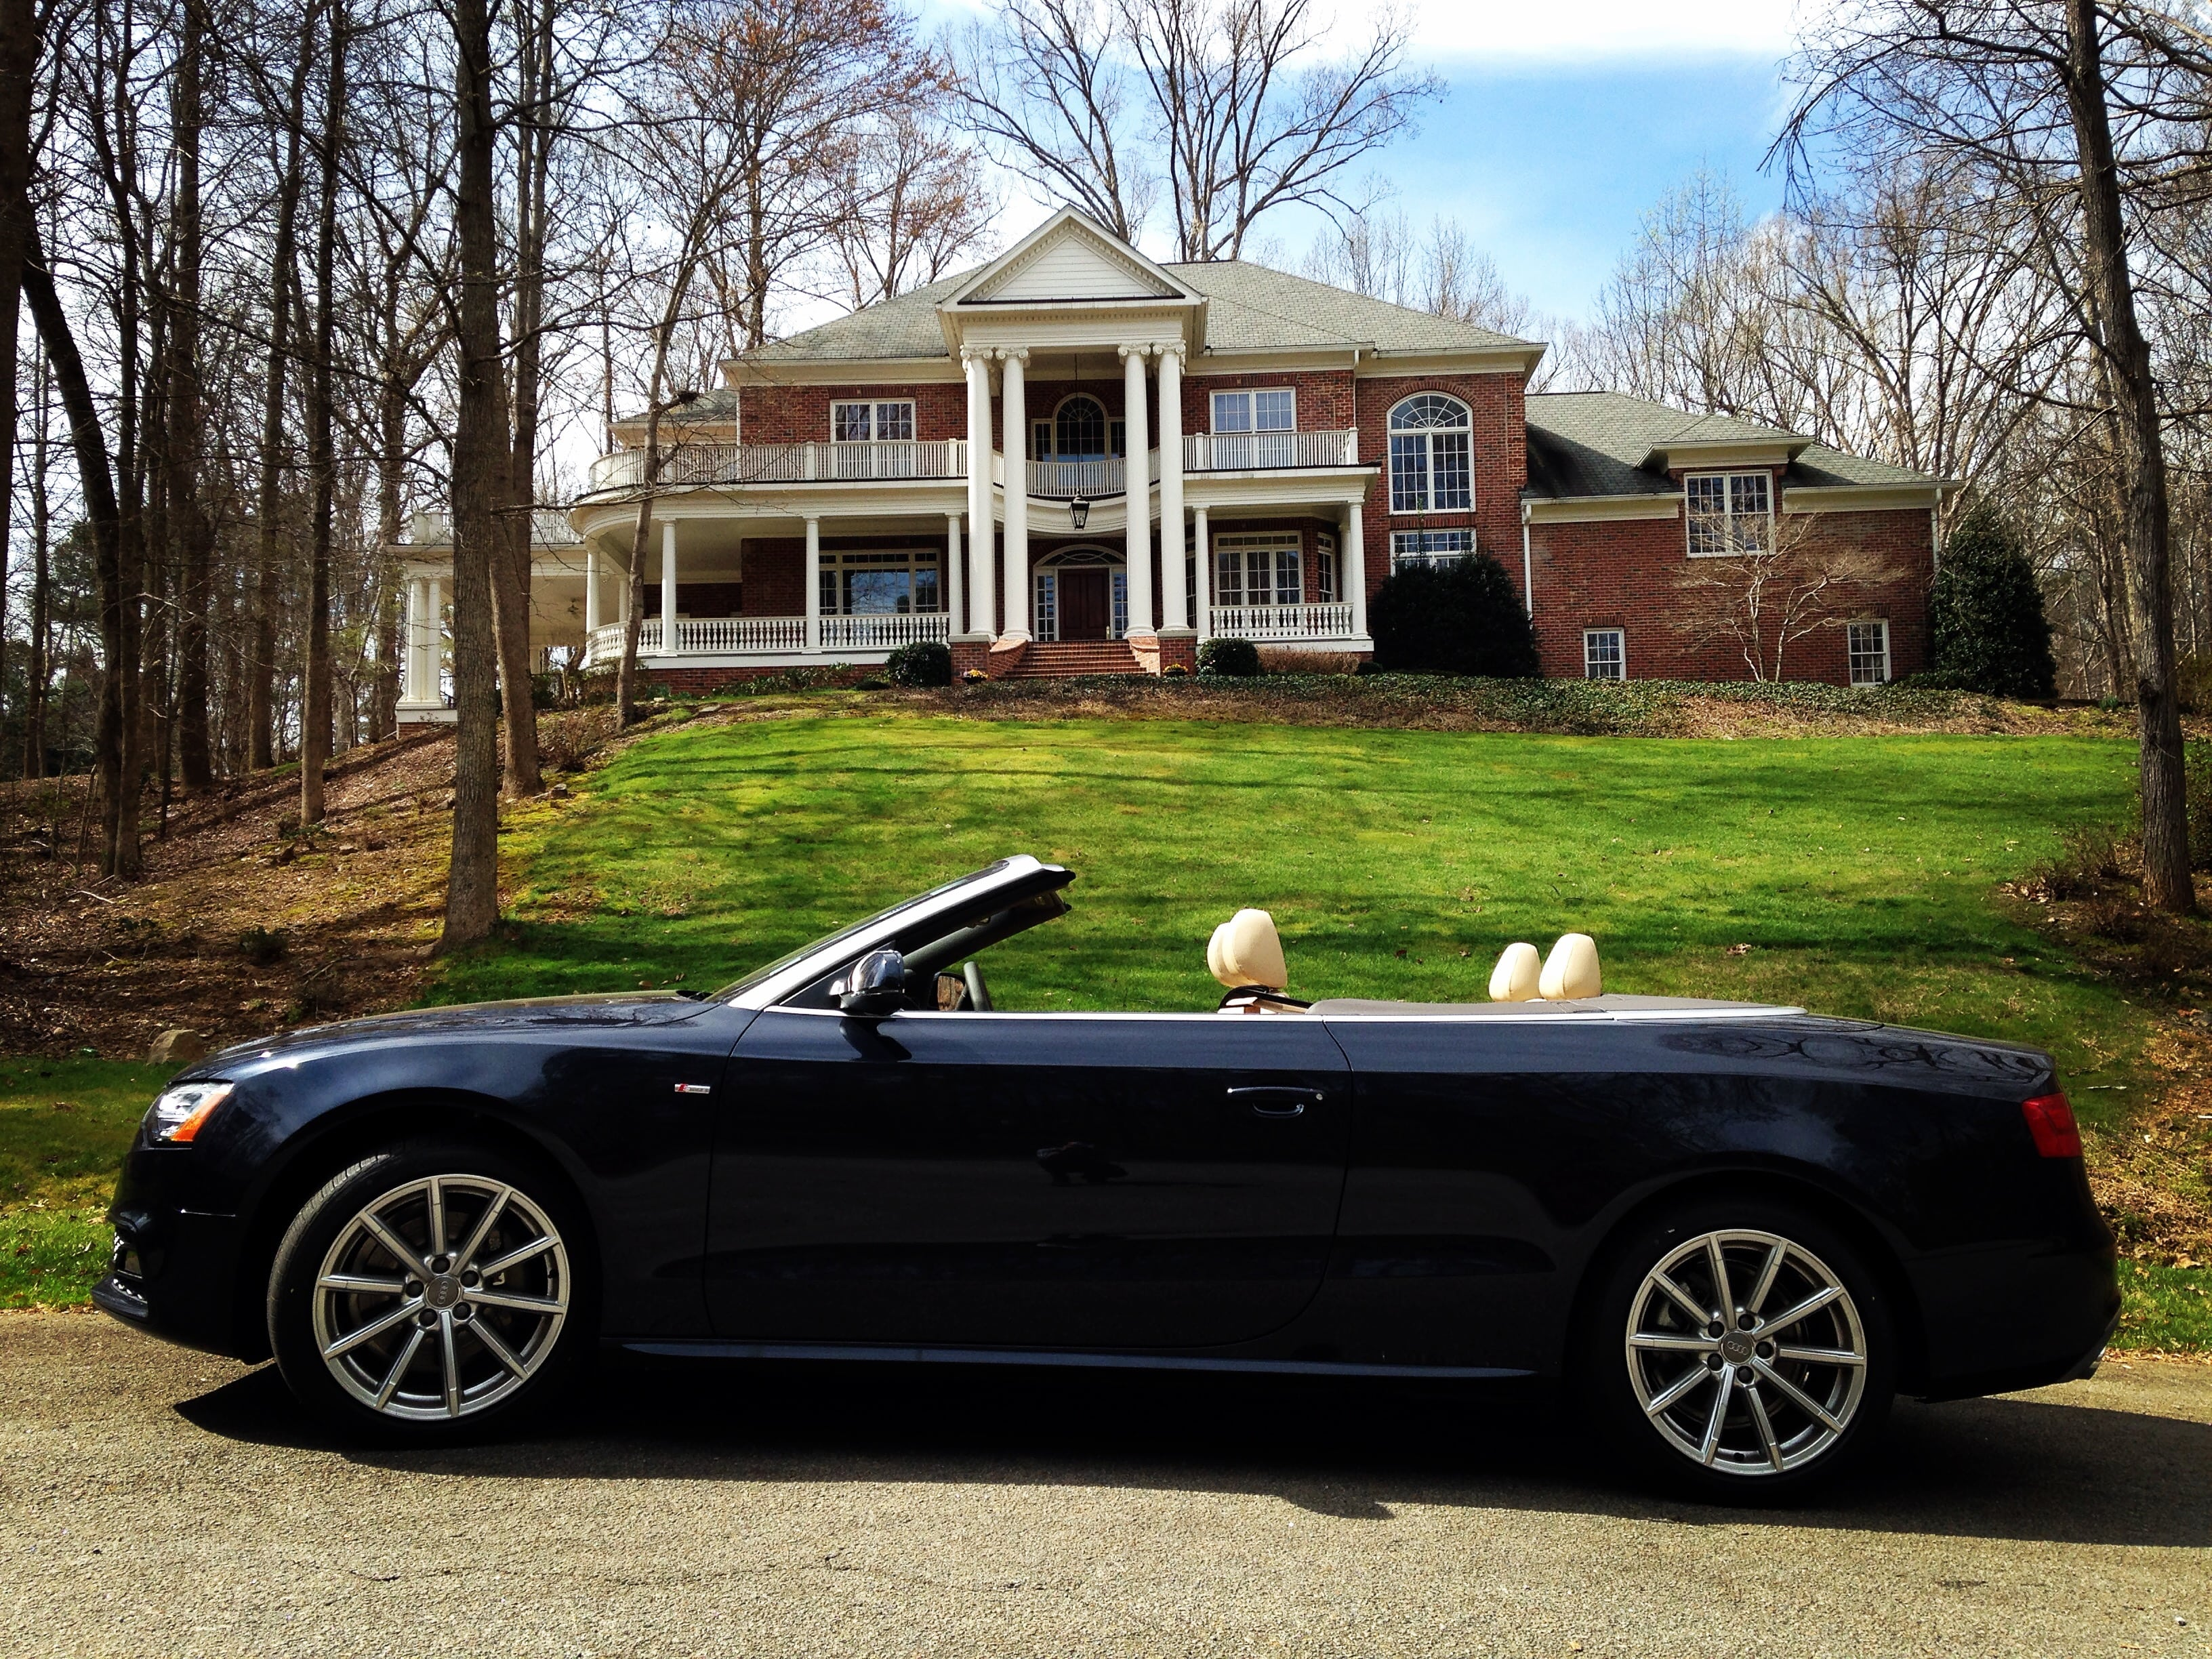 Audi A5 Convertible Cabriolet Review In Cary North Carolina